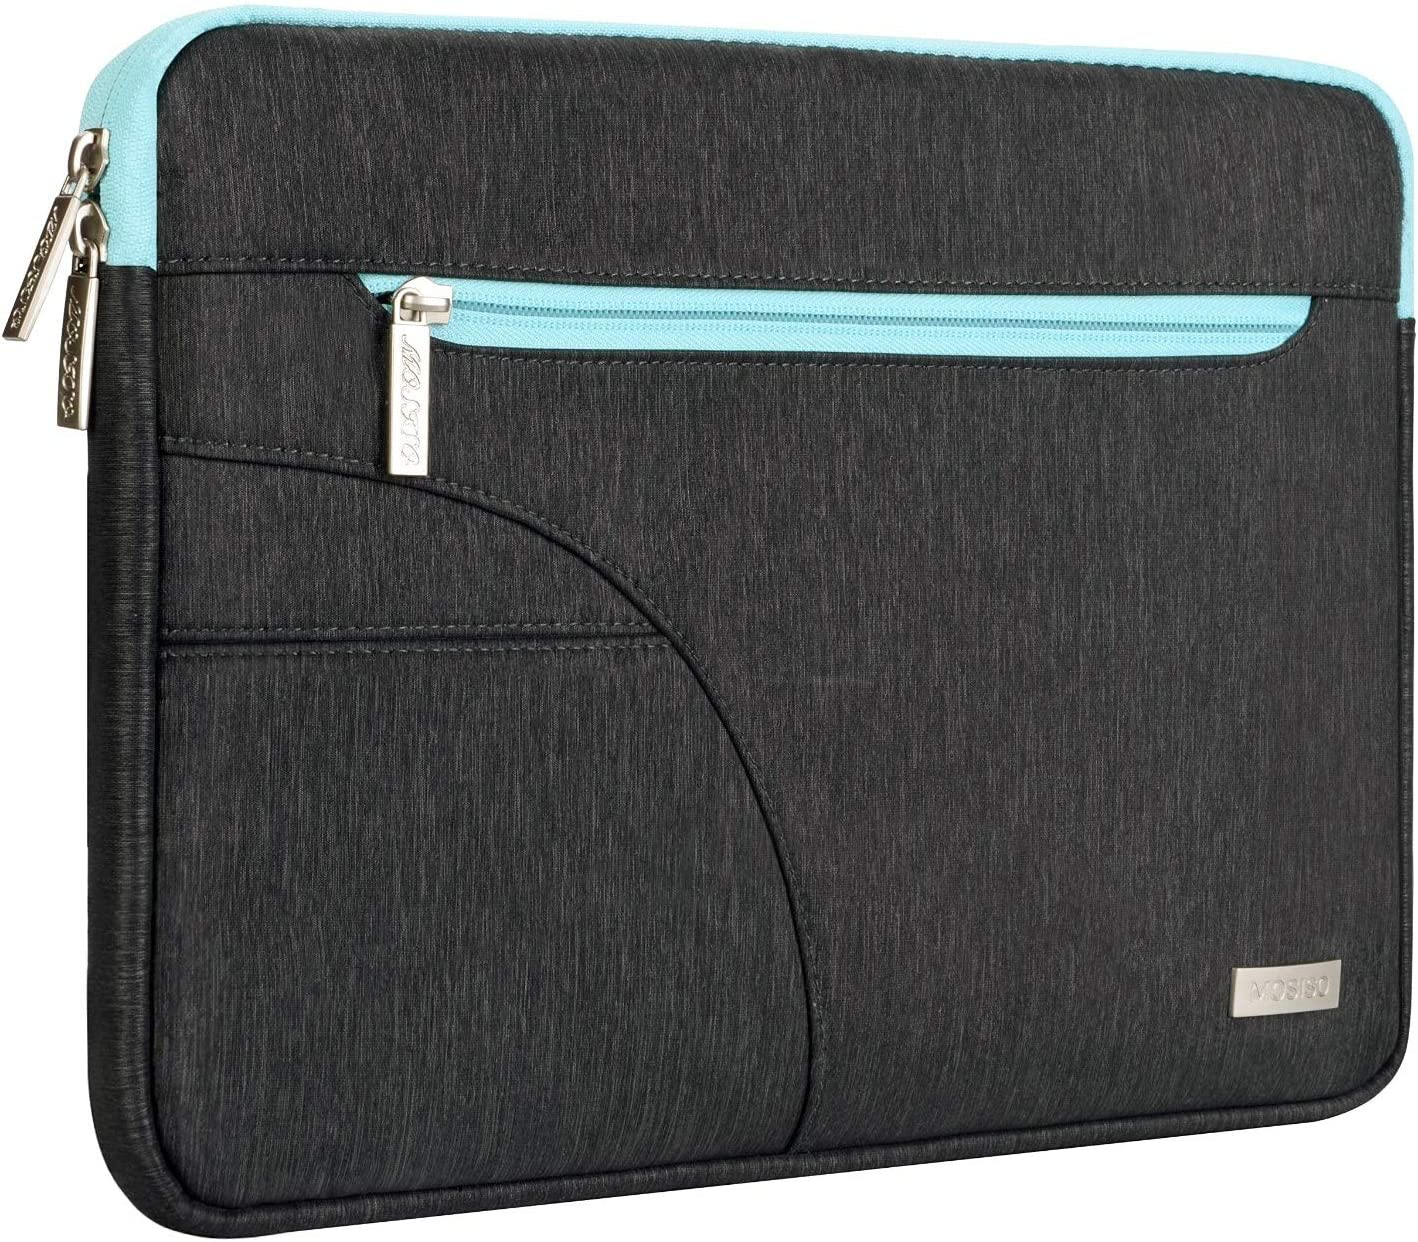 MOSISO Laptop Sleeve Compatible with 2019 MacBook Pro 16 inch A2141, 15-15.6 inch MacBook Pro 2012-2015, Notebook Computer, Polyester Carrying Case Bag with Accessory Pocket, Black & Hot Blue